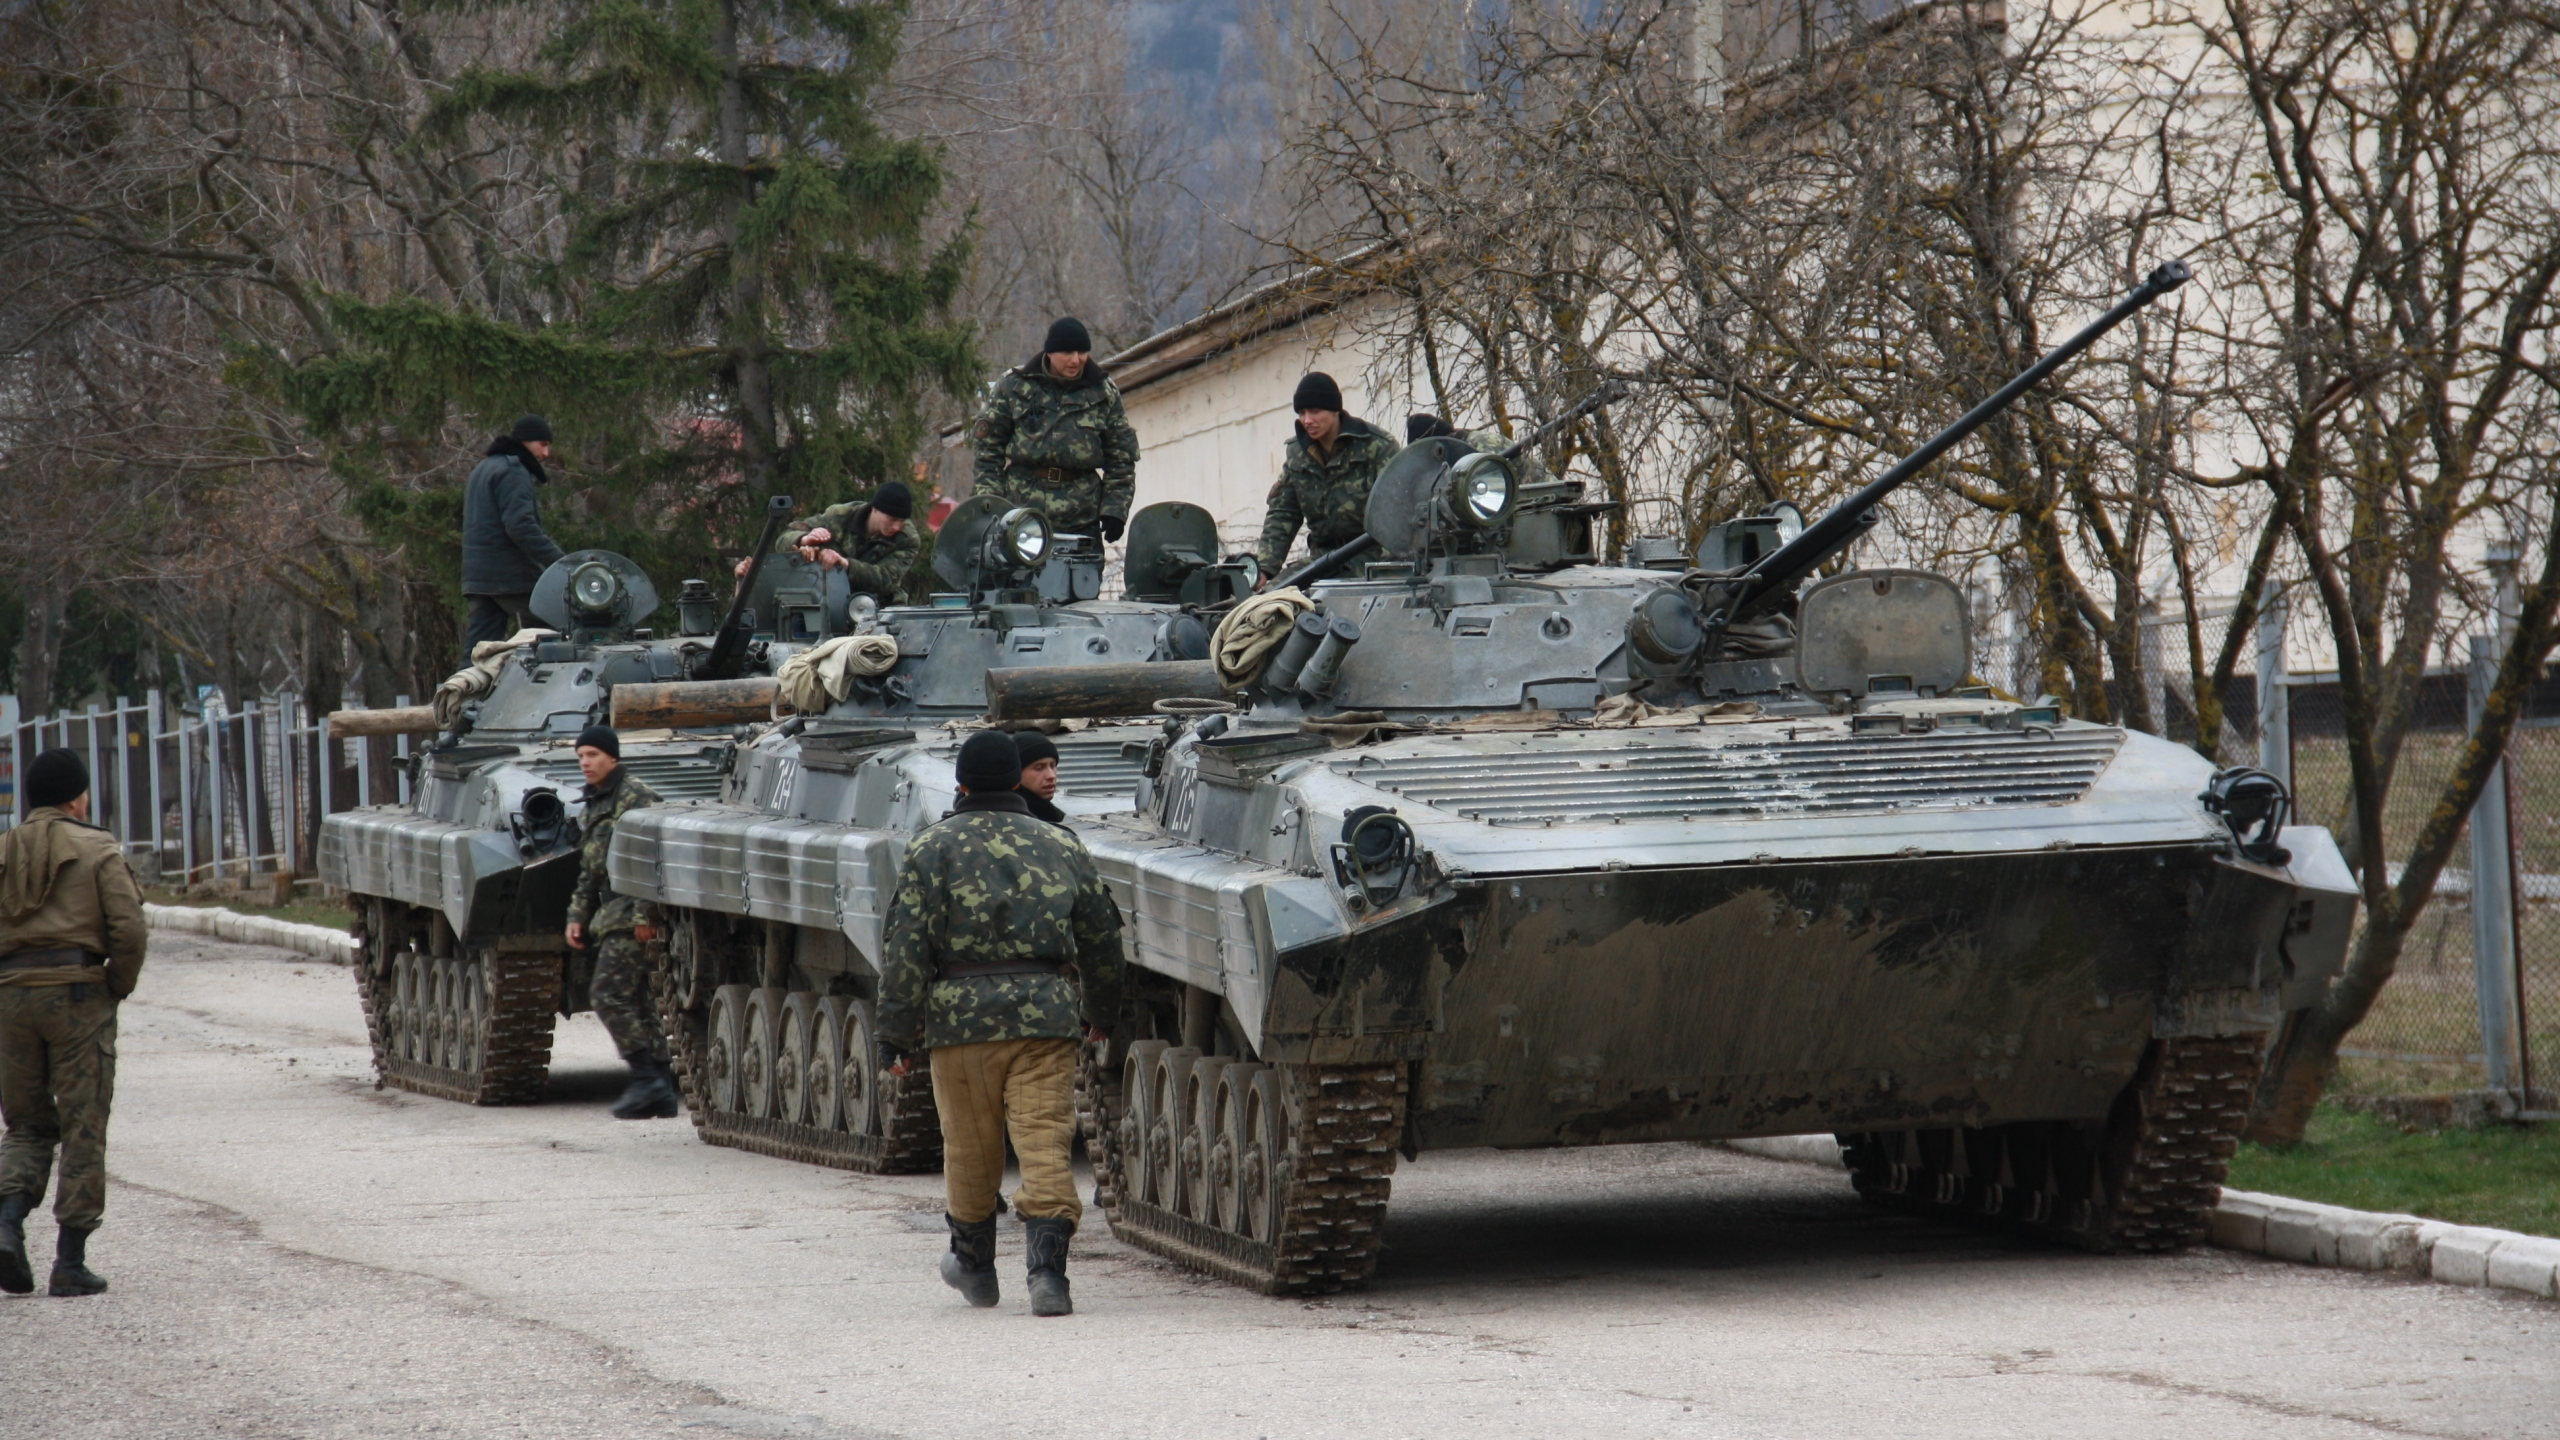 Russian military forces block a Ukrainian military base in Perevalne Sunday, March 2, 2014. Photo: Ukrainian government via CNN